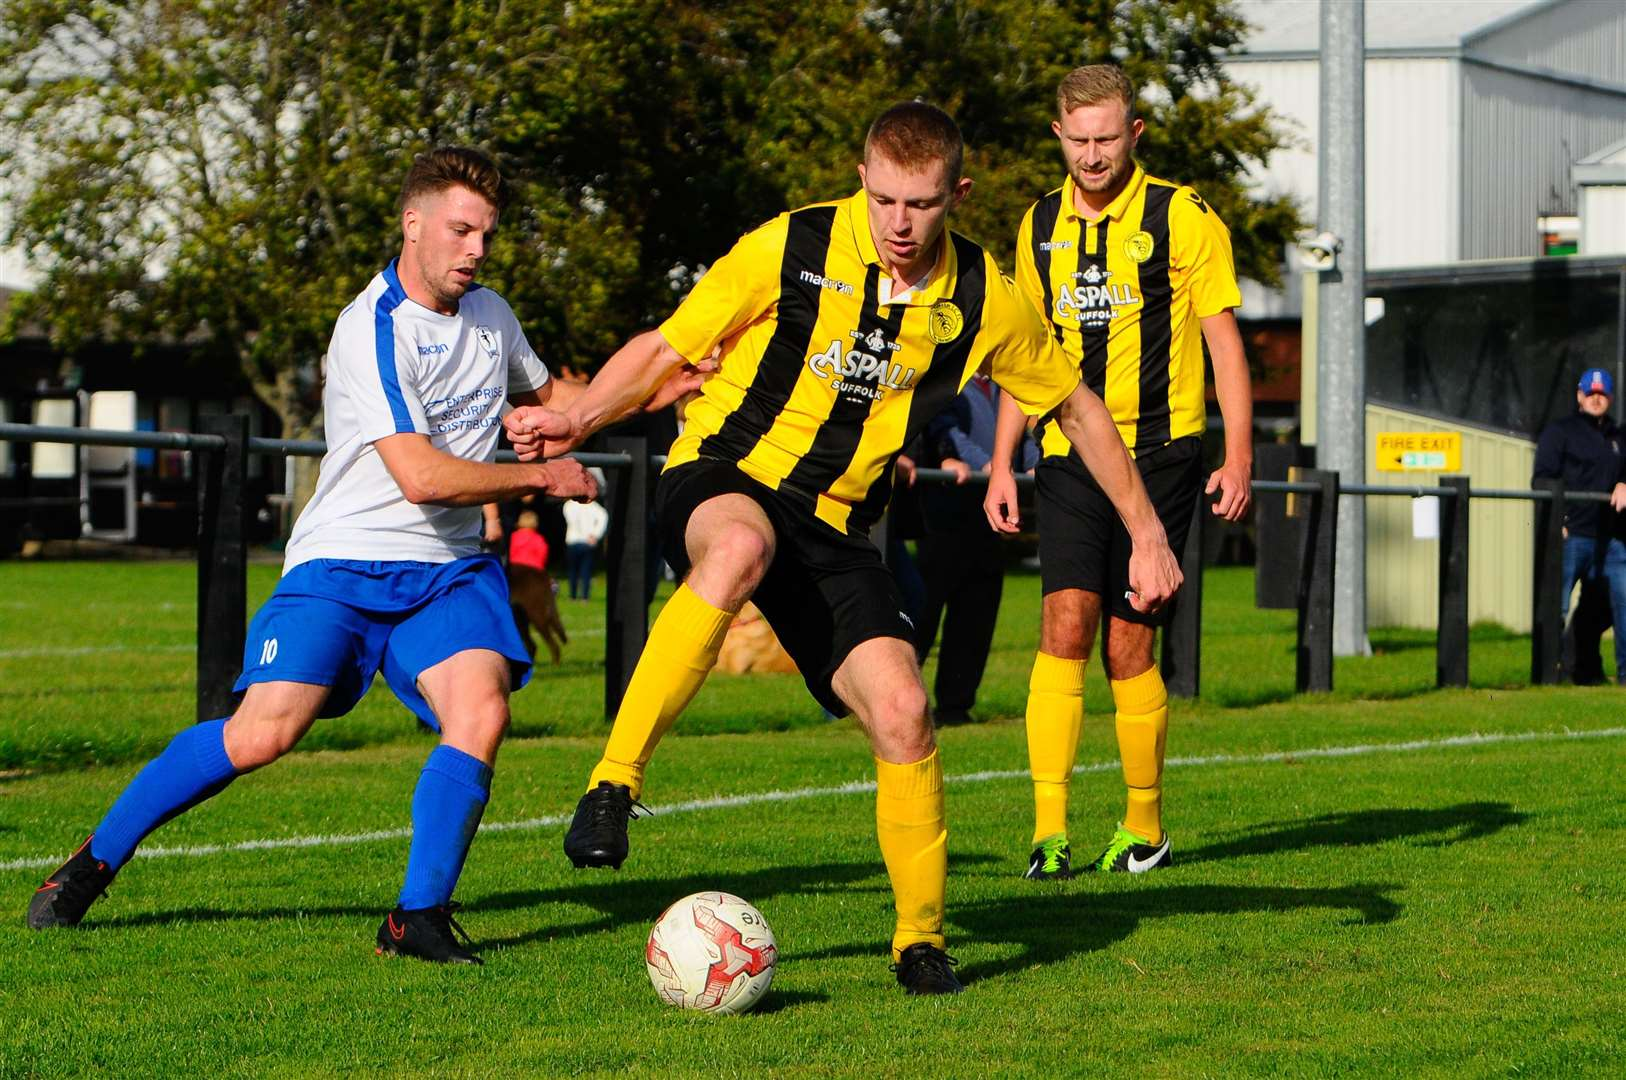 Debenham, Suffolk, 05/09/2020..Football action from Debenham LC vs Fakenham Town FC - Will Seccombe..Picture: Mark Bullimore Photography. (41983240)